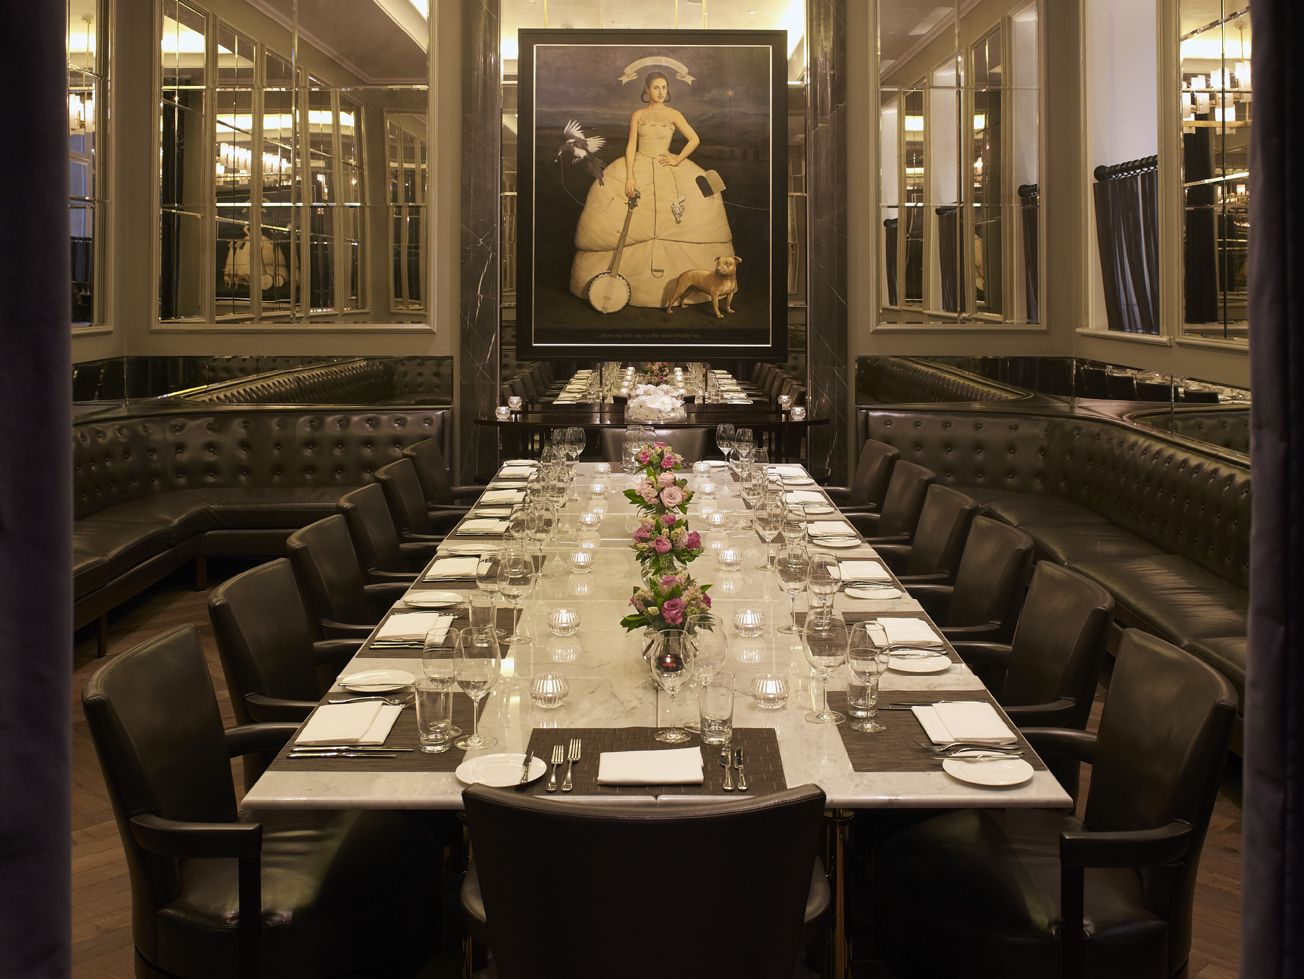 The Northall Private Dining Room Seats Up To Twenty At One Table Interesting Explorer Of The Seas Dining Room Decorating Inspiration